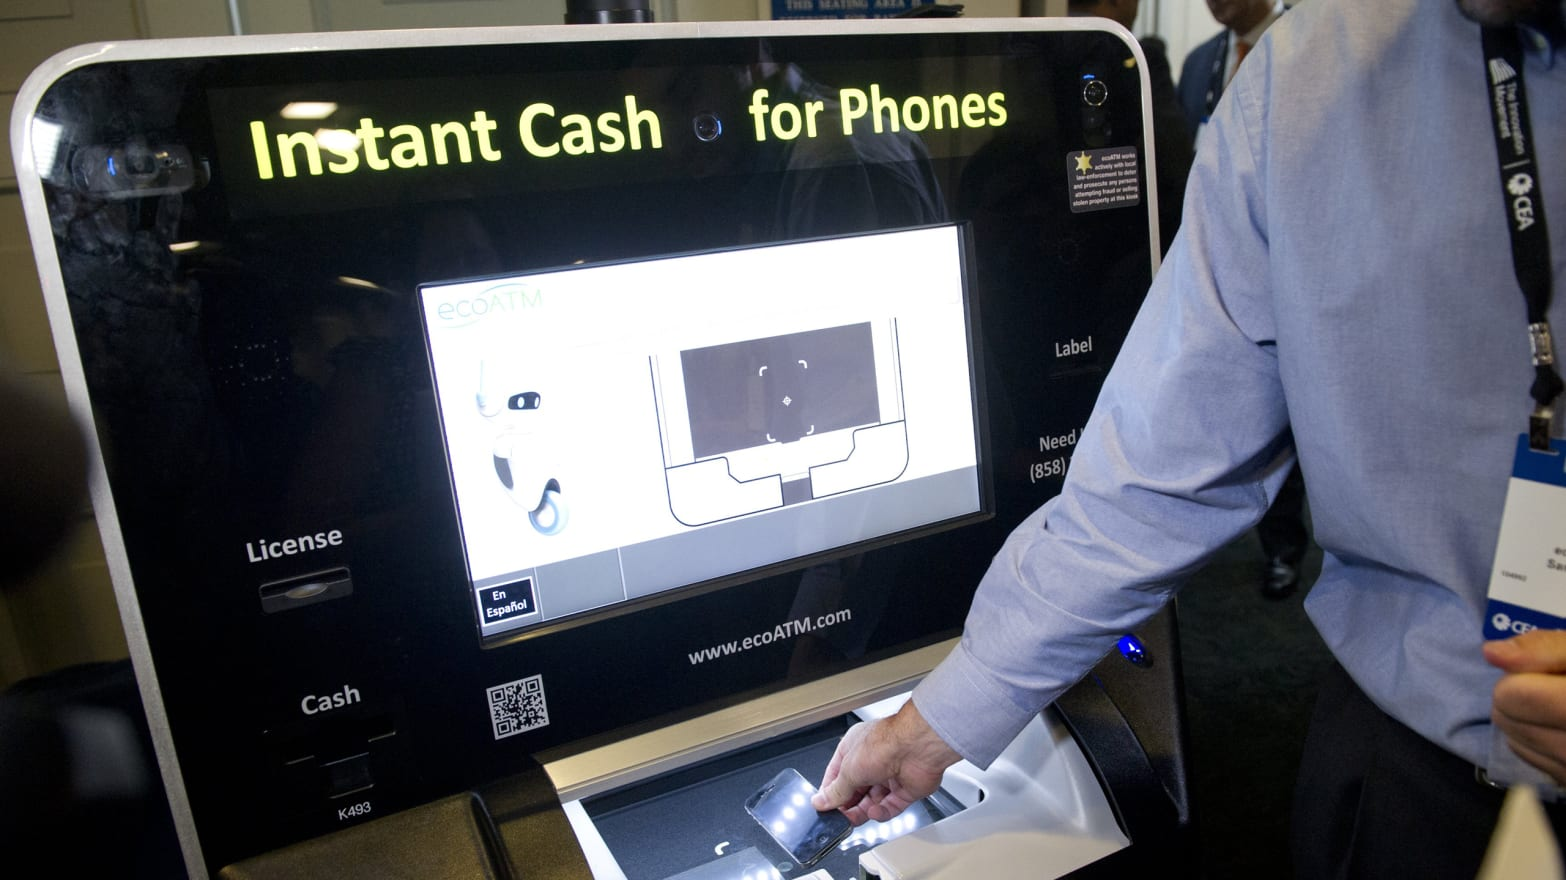 ecoATM offers consumers a new way to sell used cell phones and